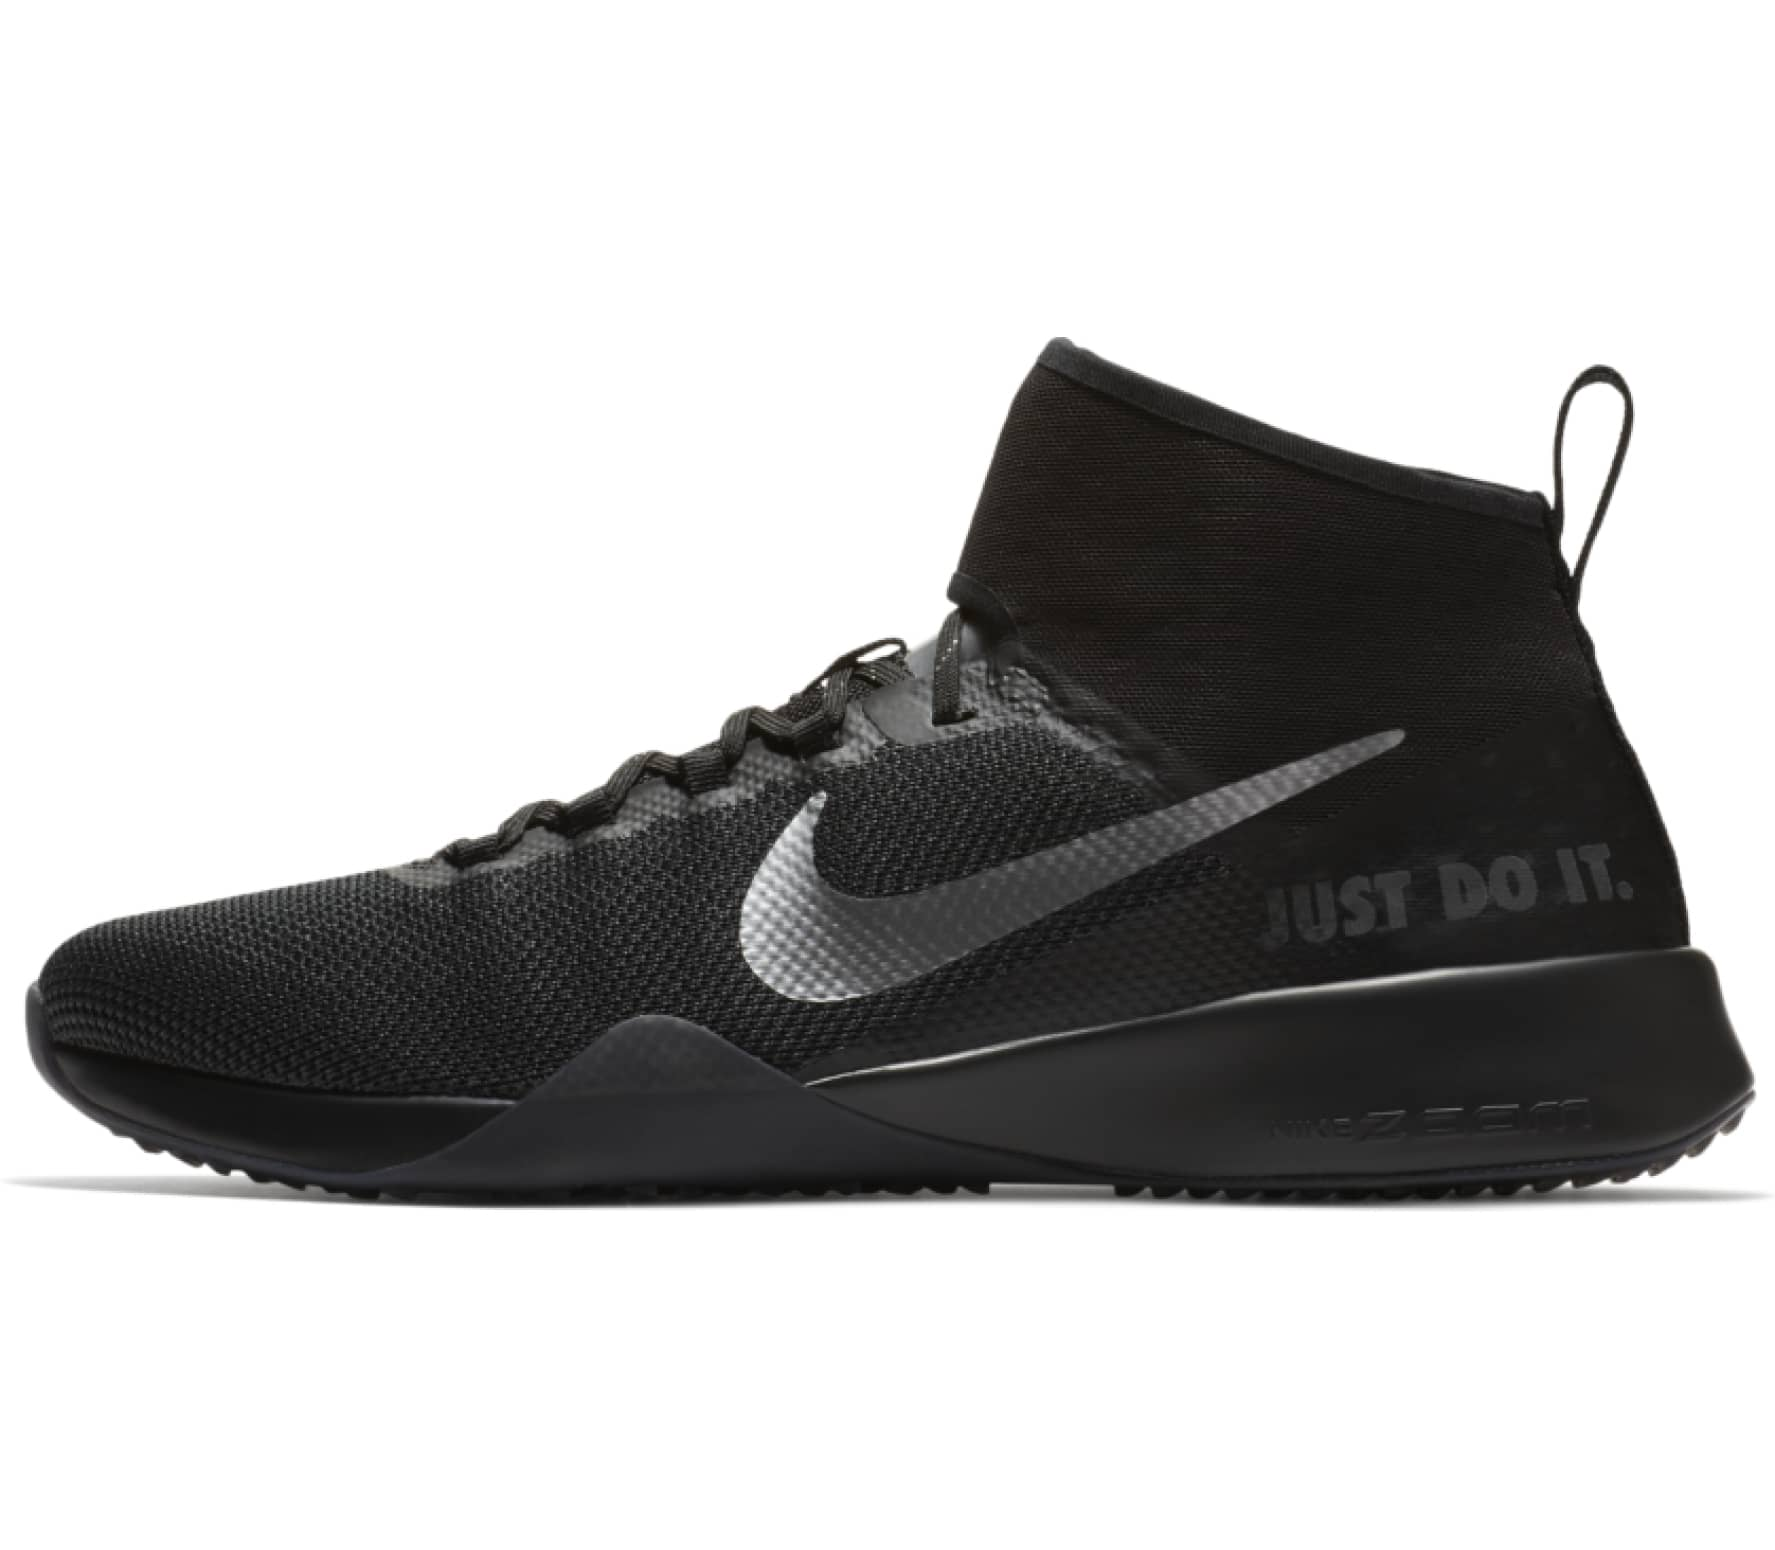 114dfe20915 Nike - Air Zoom Strong 2 Selfie women s training shoes (black) - buy ...